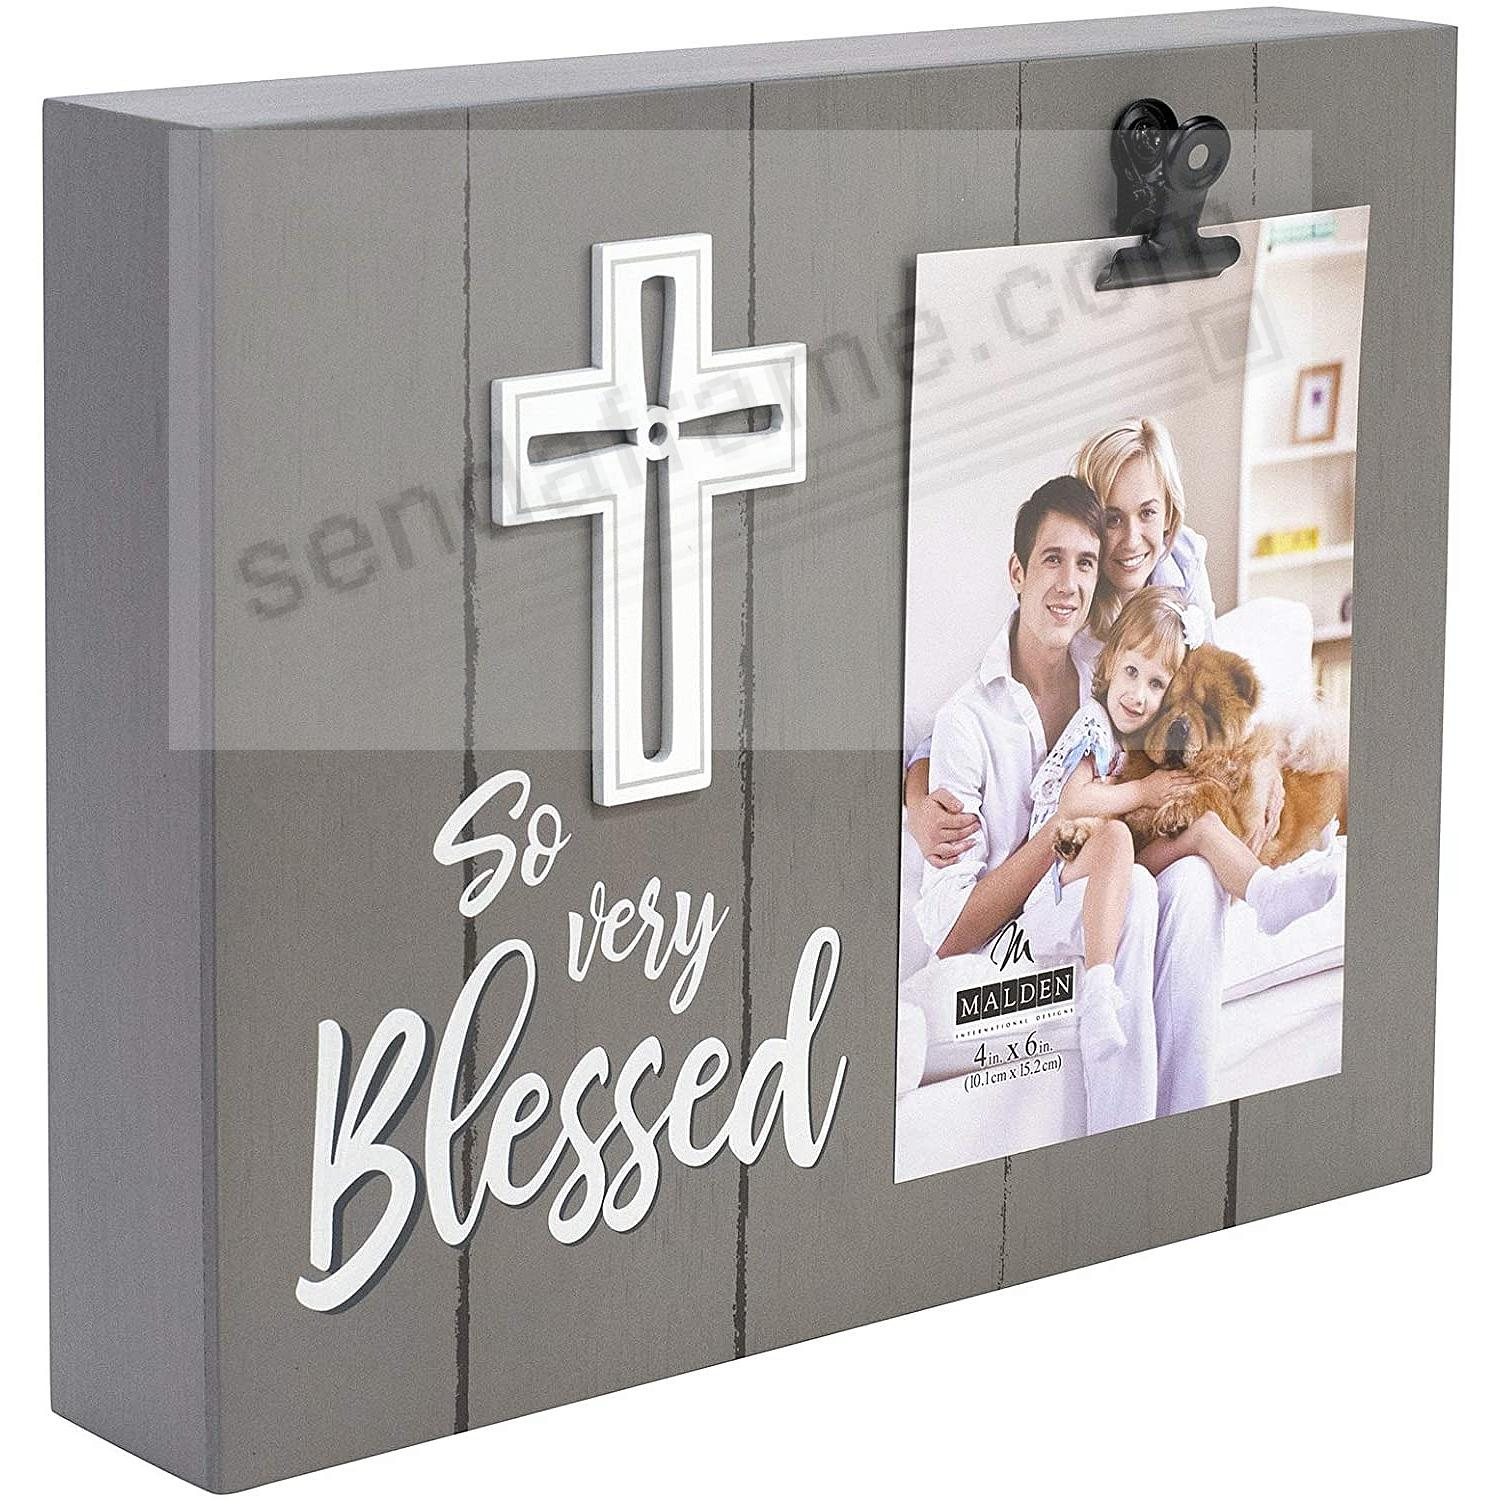 SO VERY BLESSED Clip block frame by Malden®